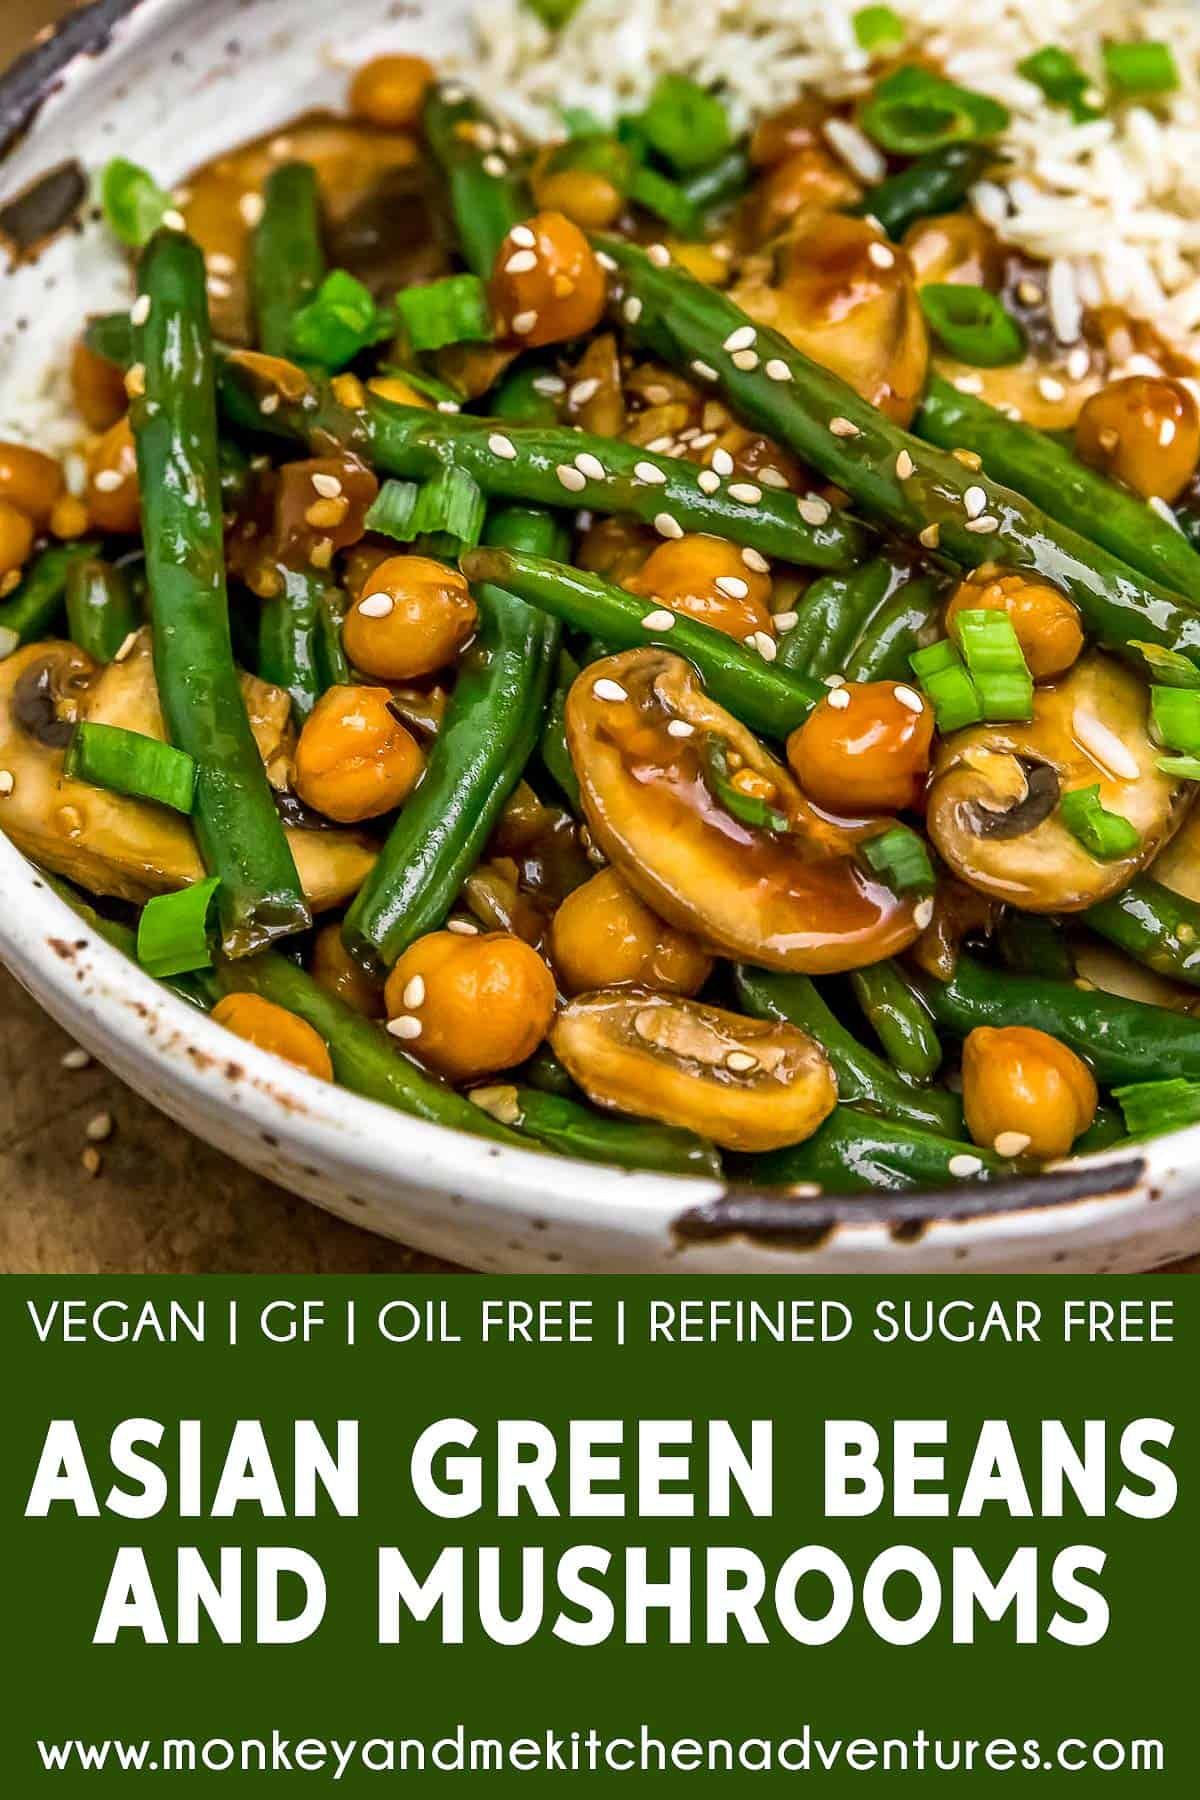 Asian Green Beans and Mushrooms with text description